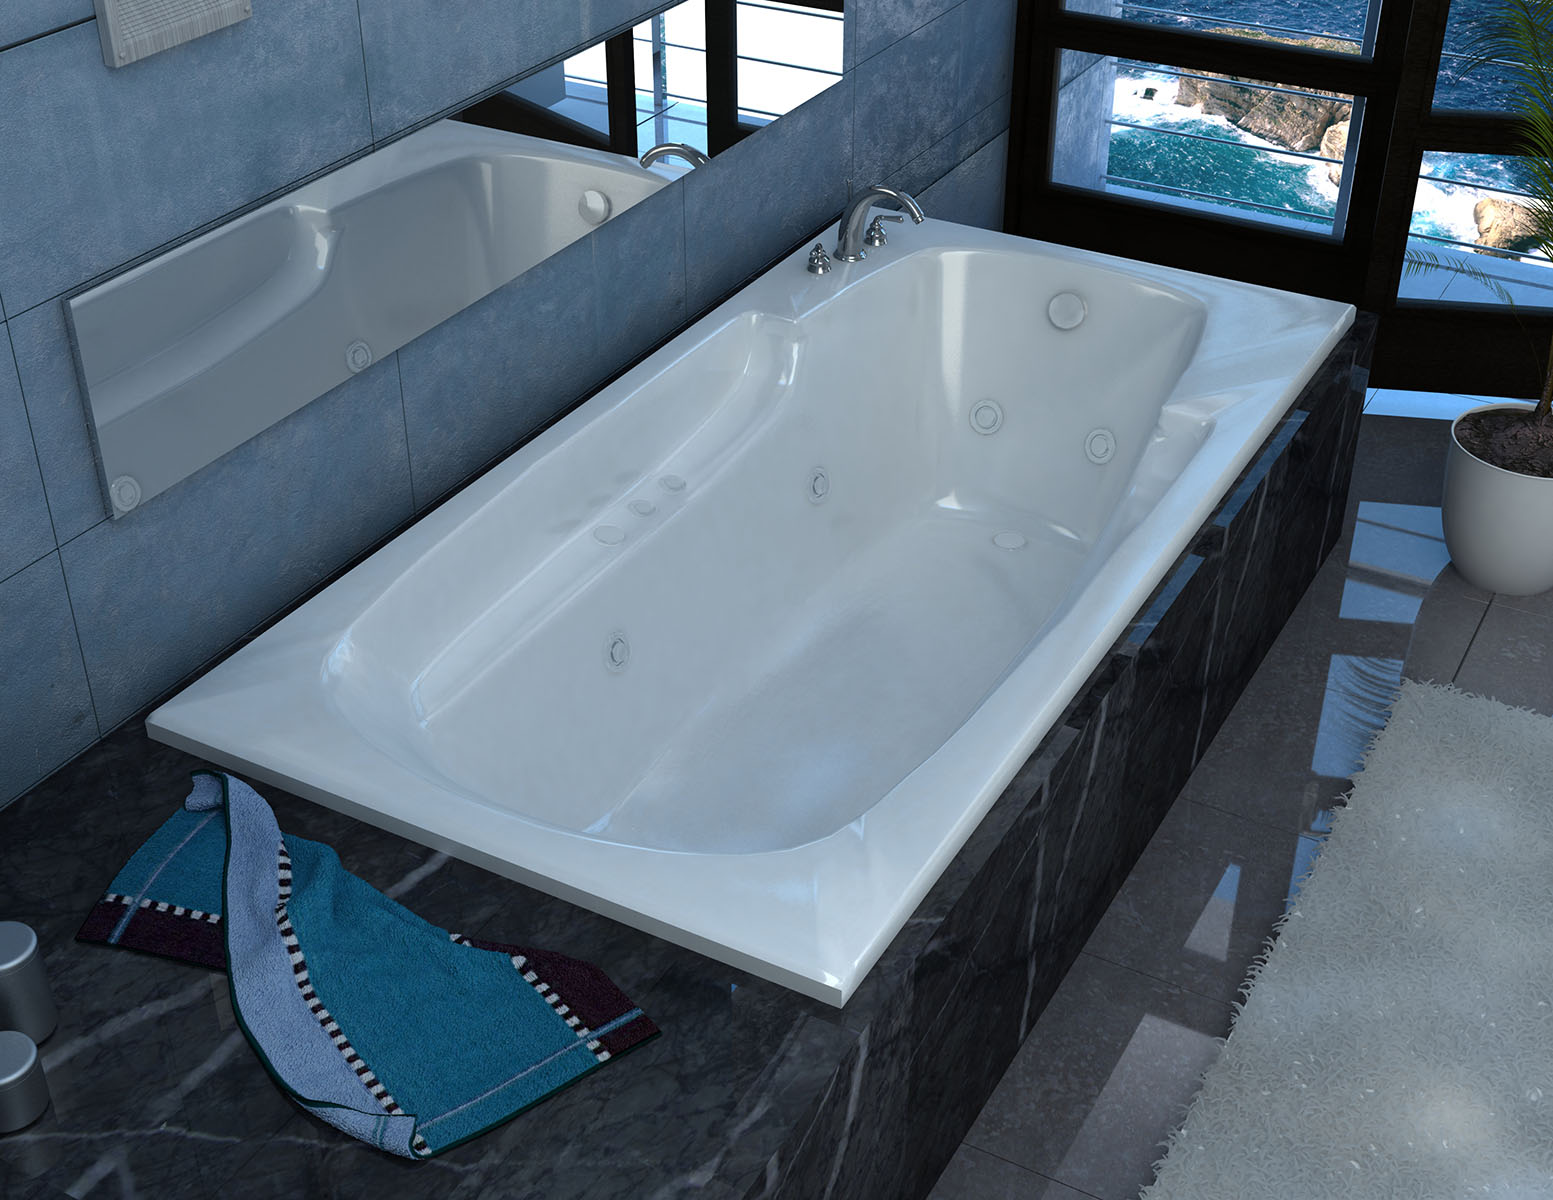 Aesis 36 x 60 Rectangular Whirlpool Jetted Bathtub